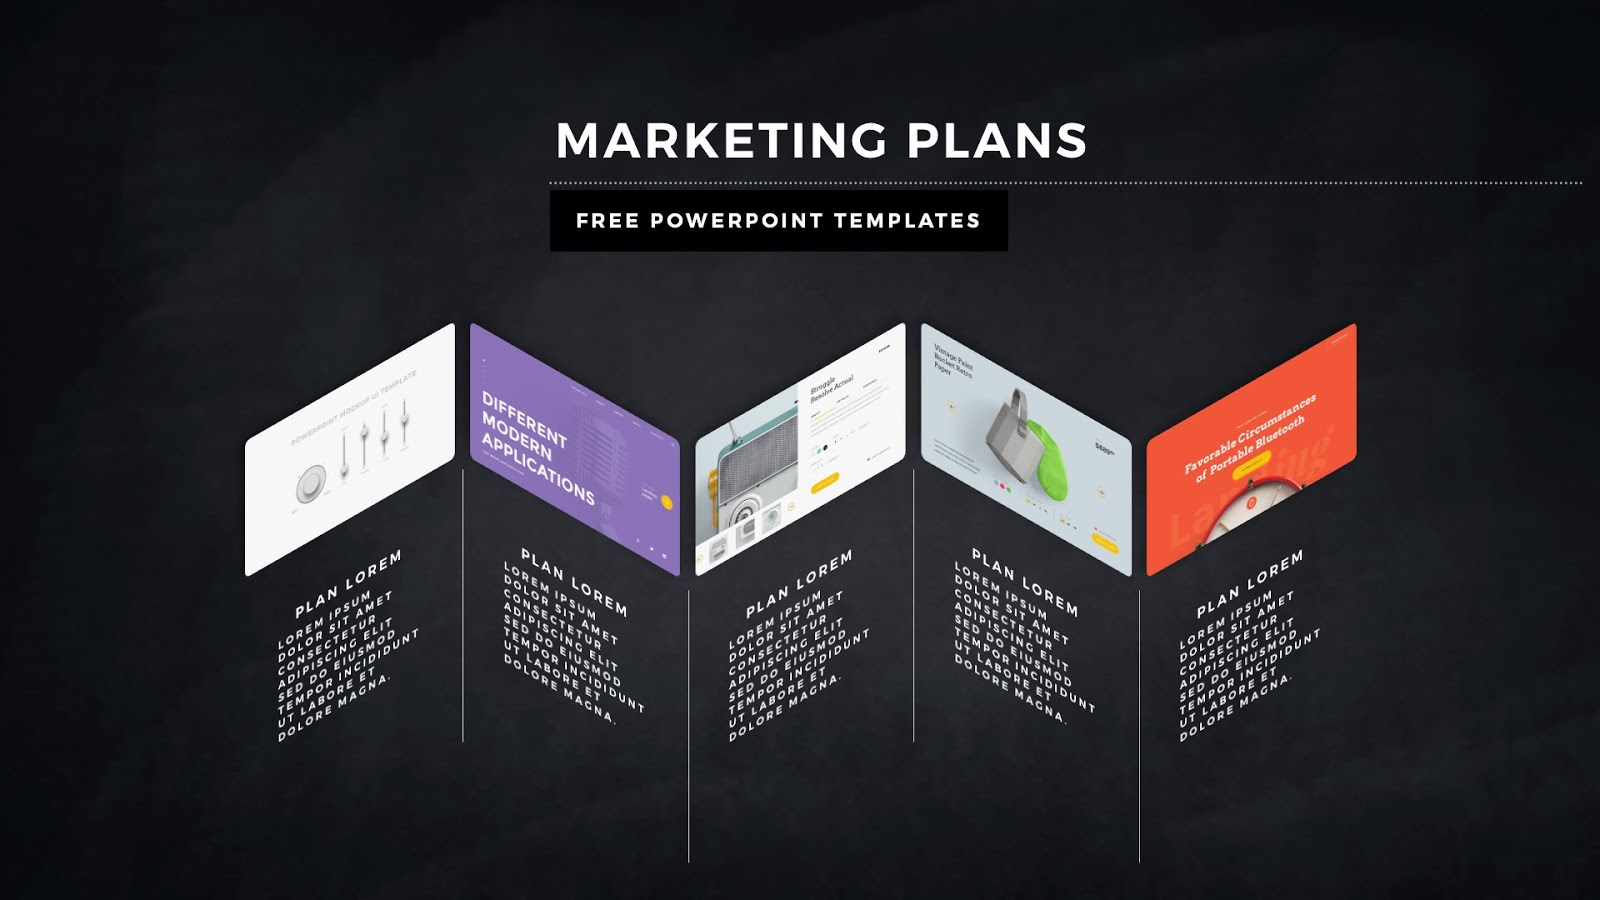 Marketing Plan Template Free Powerpoint – quantumgaming.co